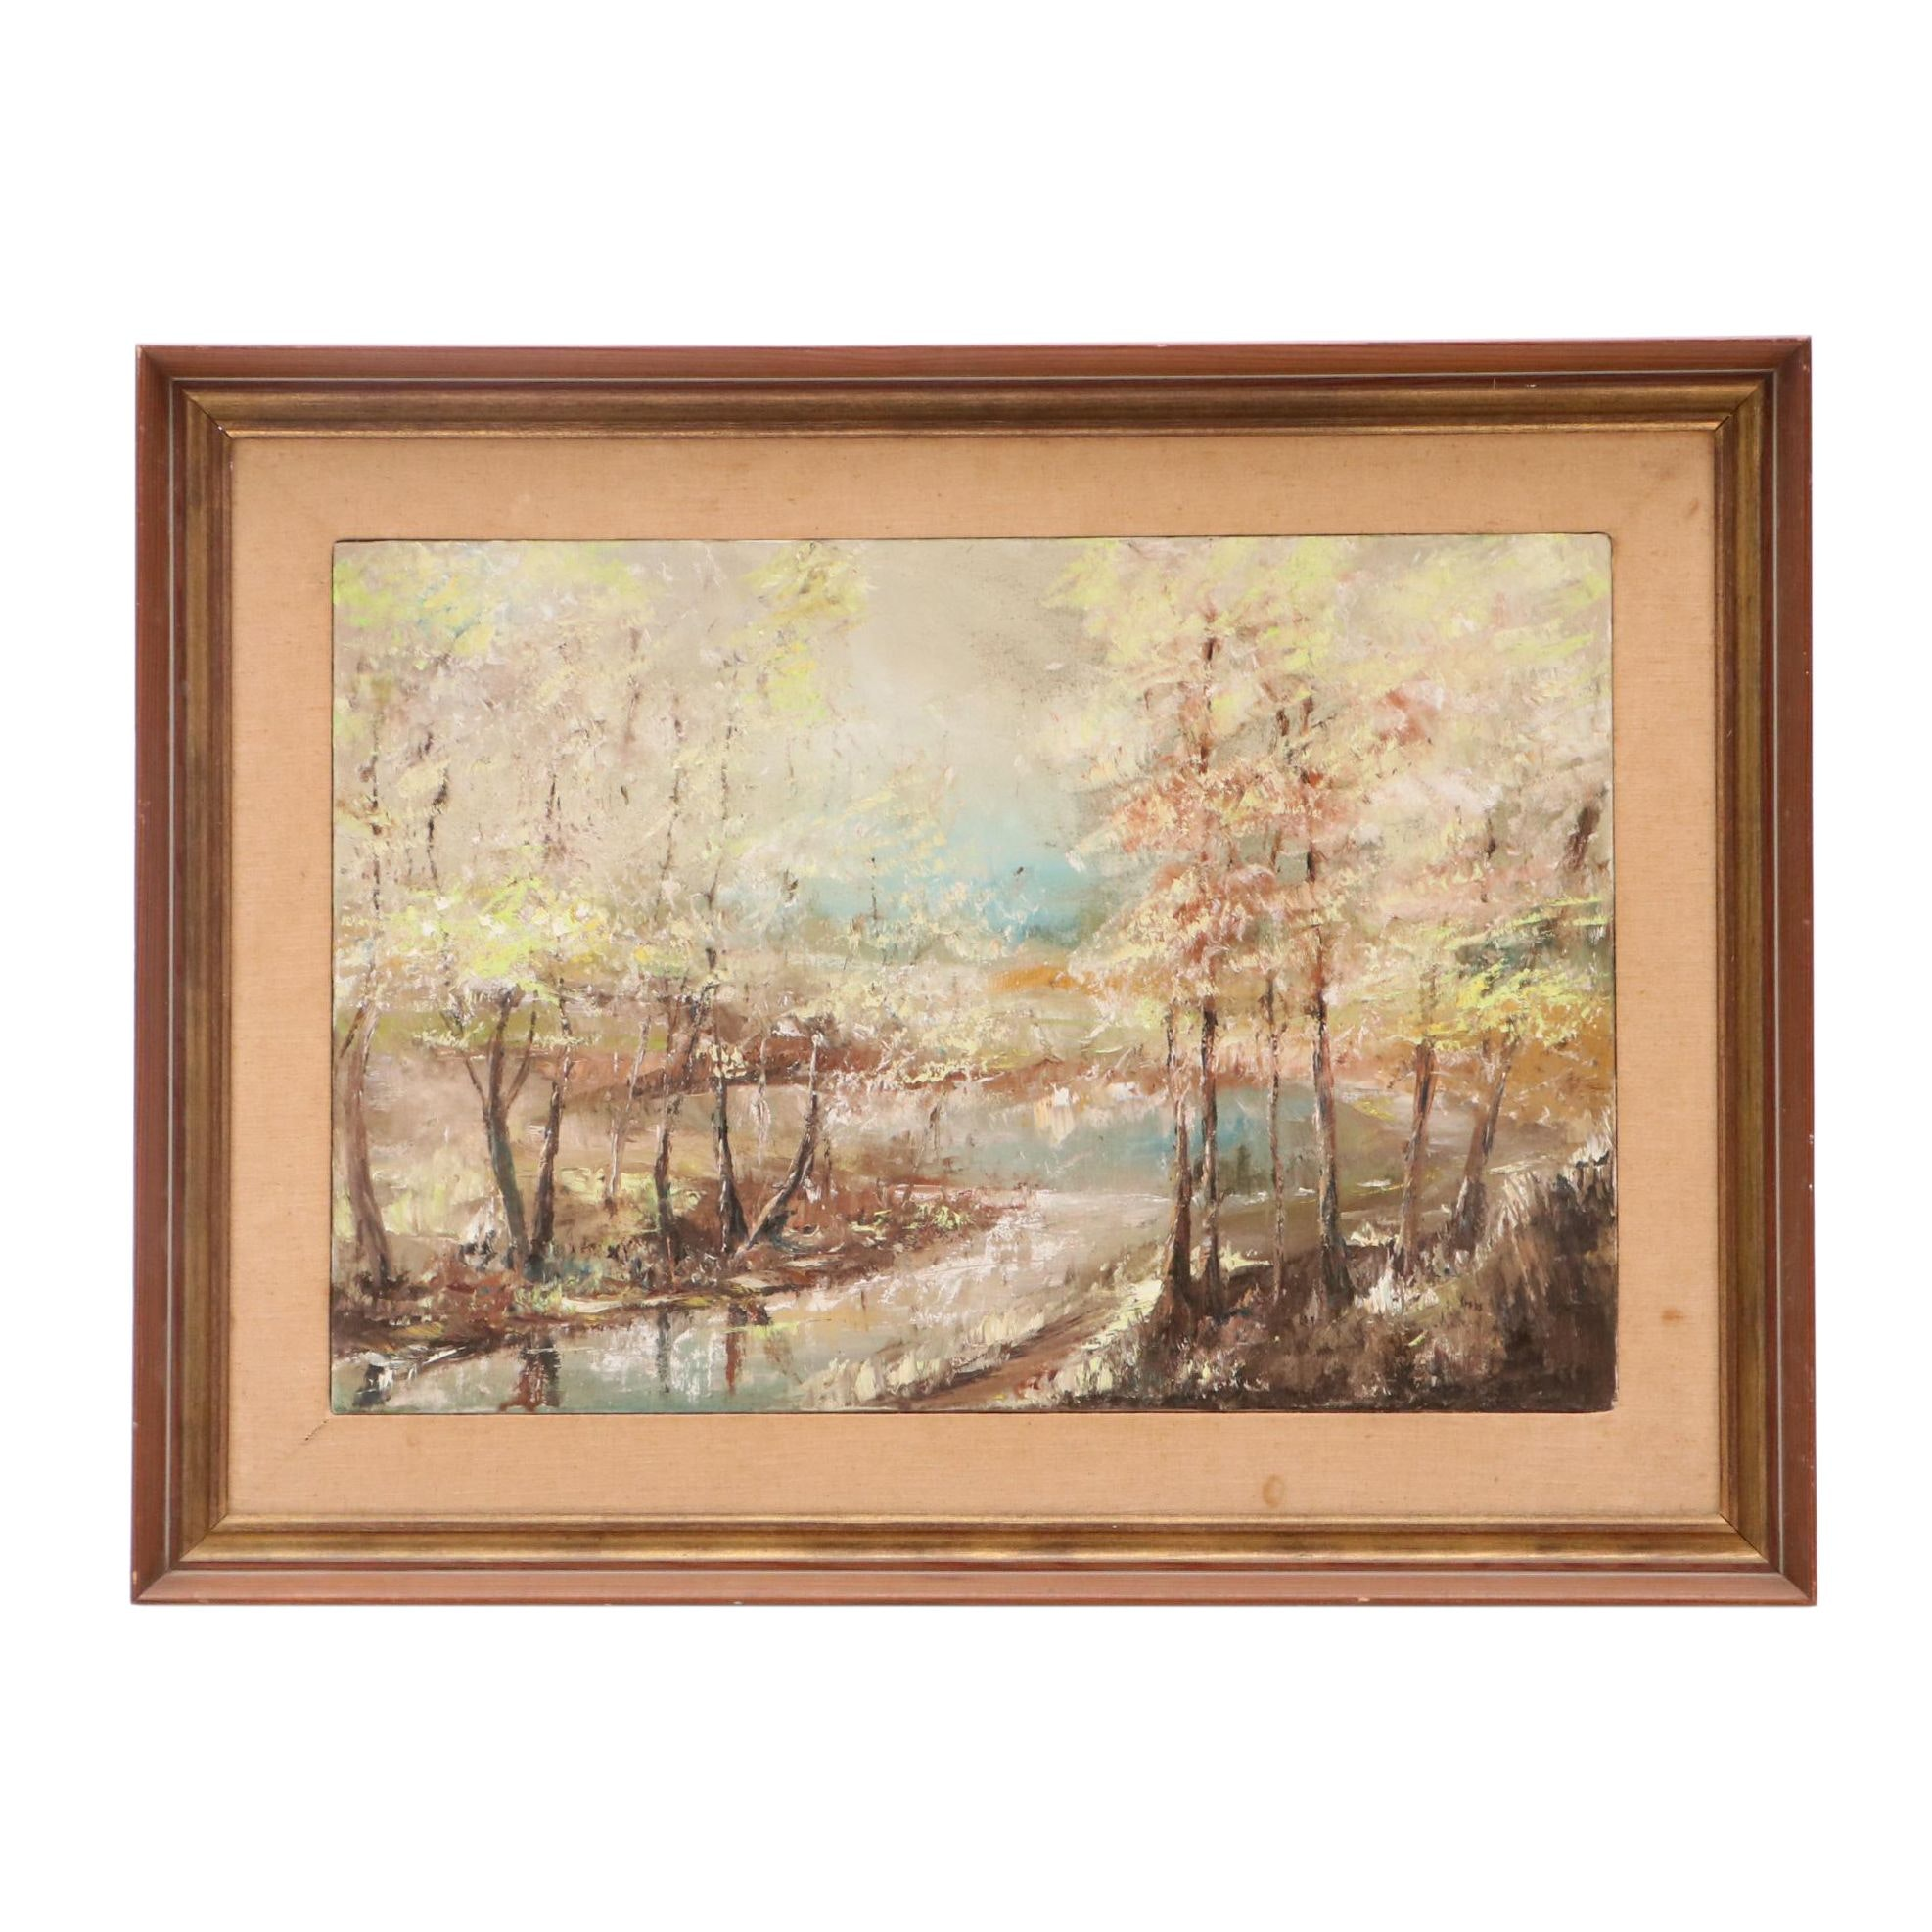 Krebs Expressionistic Oil Painting of Forested Landscape